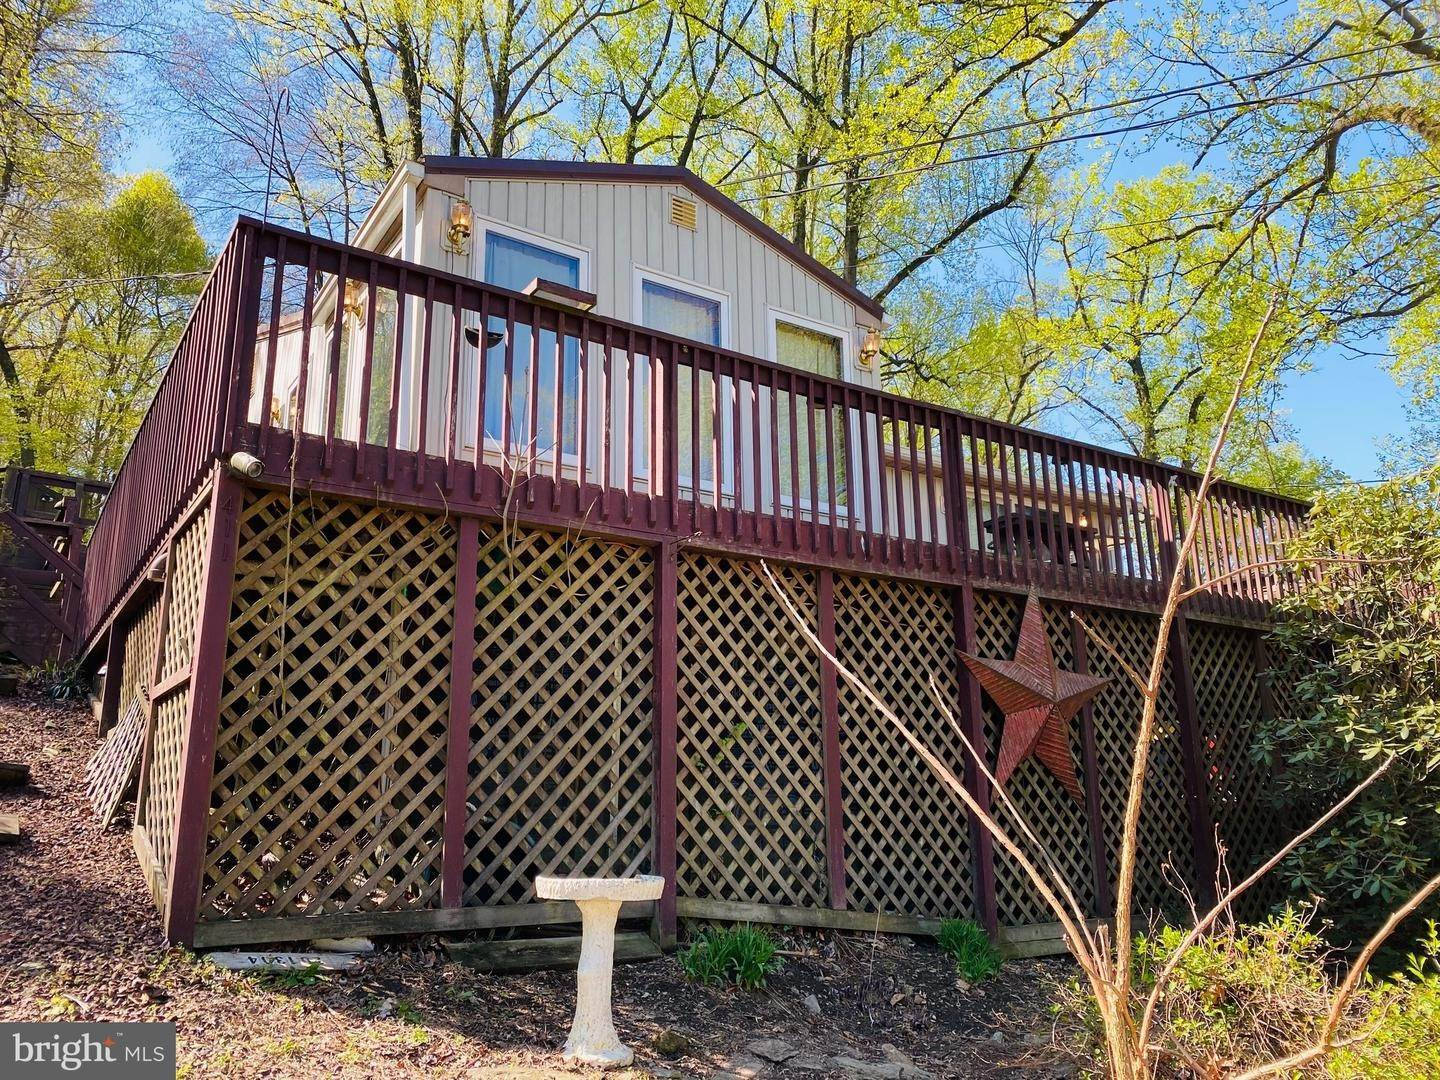 4. Residential for Sale at 411 PEACH BOTTOM Road Peach Bottom, Pennsylvania 17563 United States